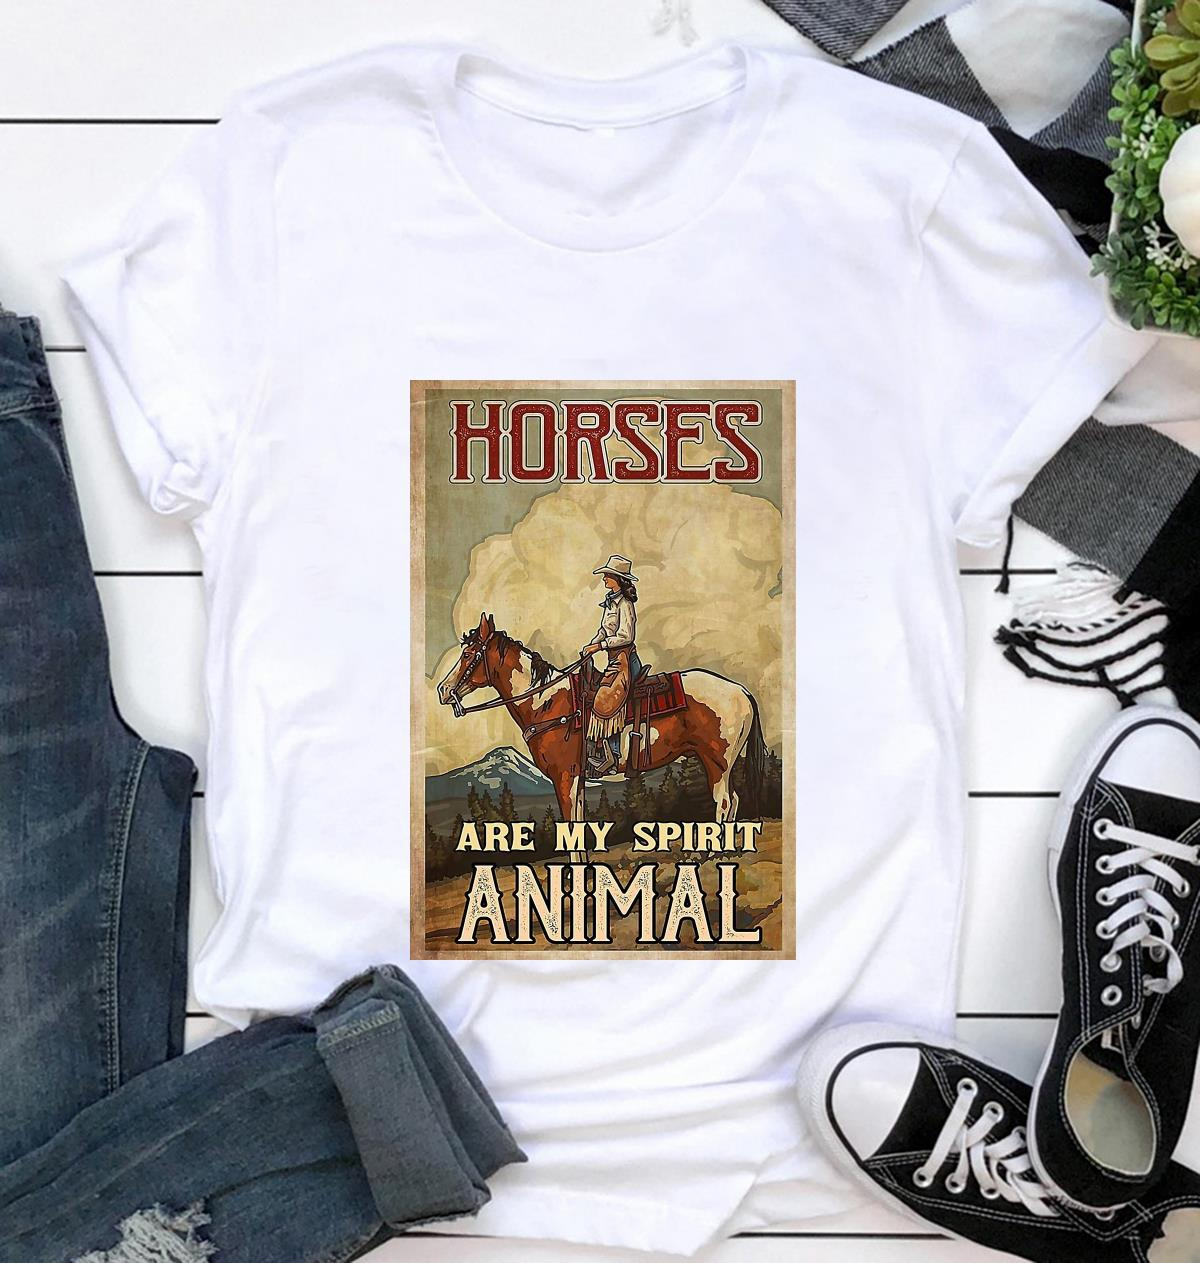 Cowgirl horses are my spirit animal poster t-shirt